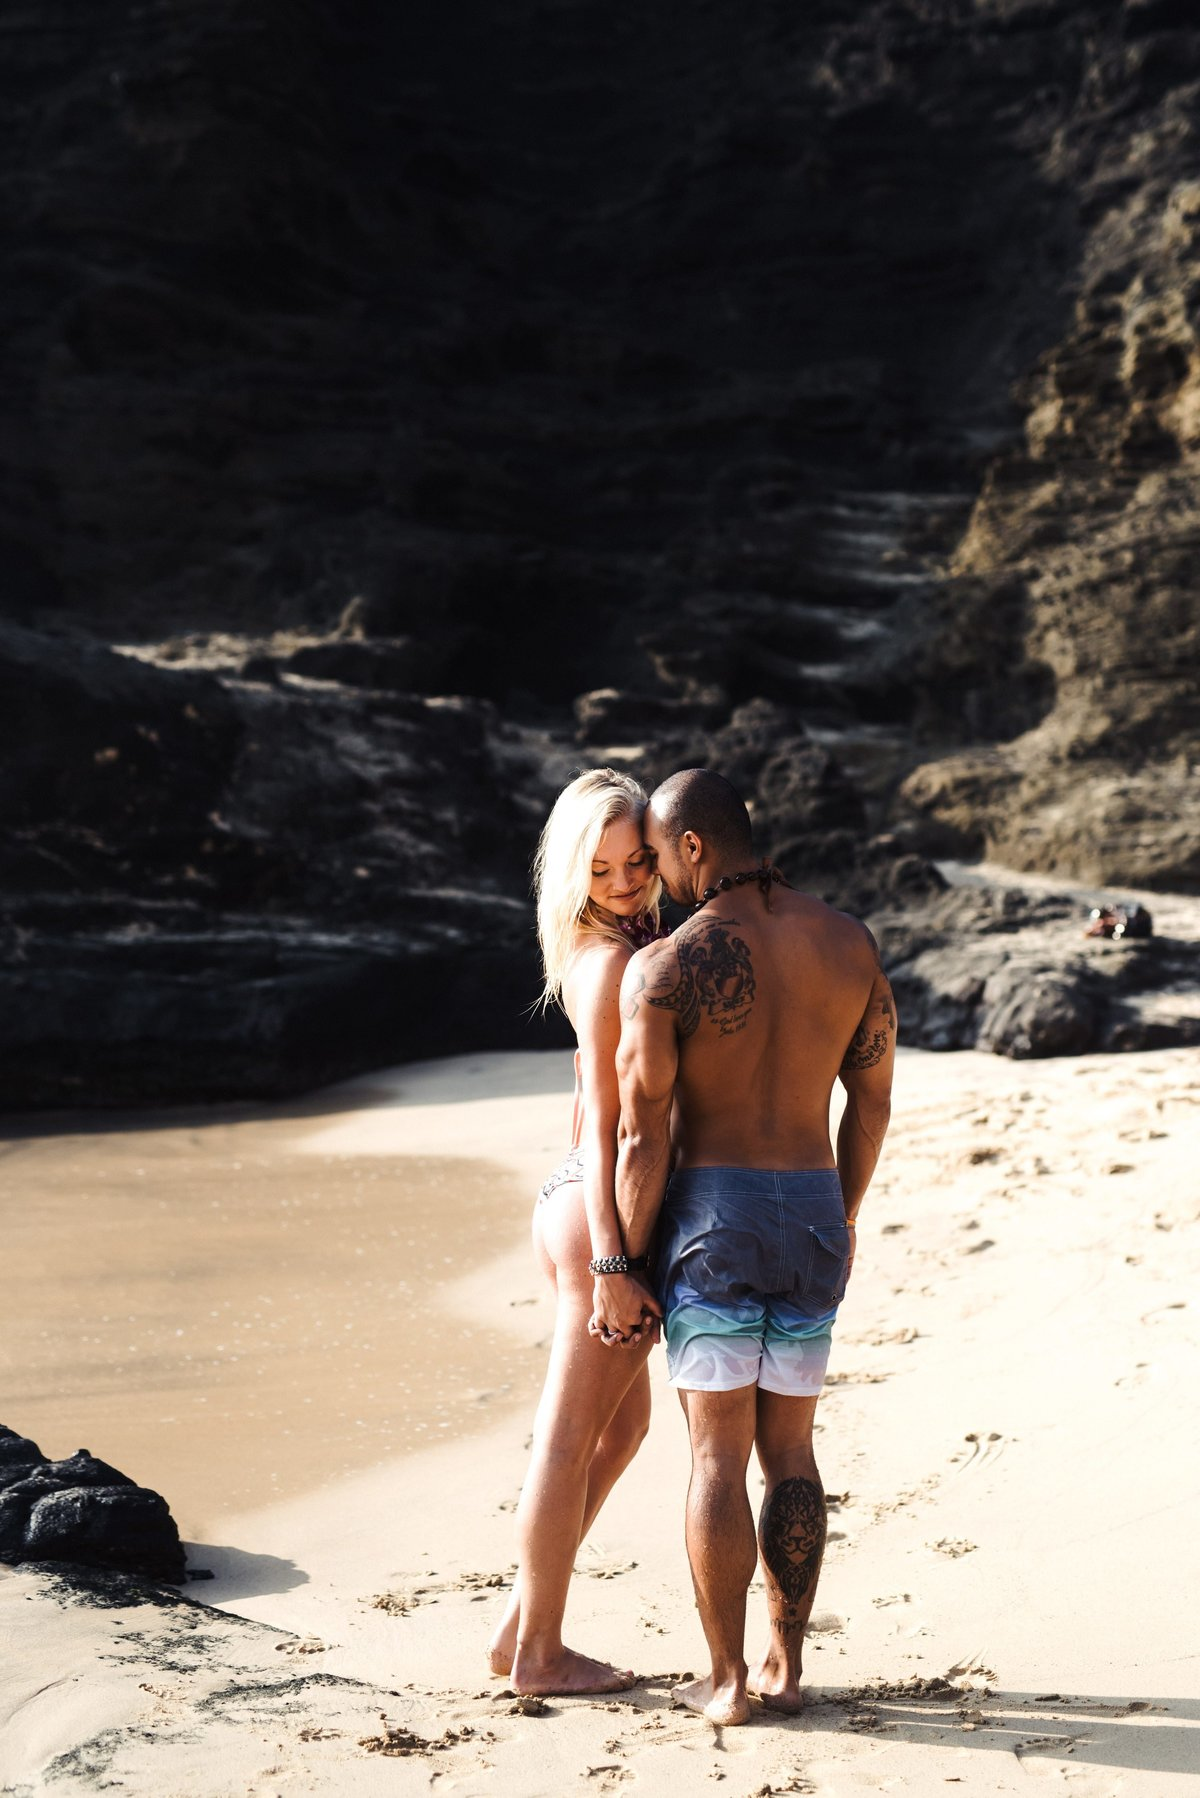 Eternity Beach Honolulu Hawaii Destination Engagement Session - 89